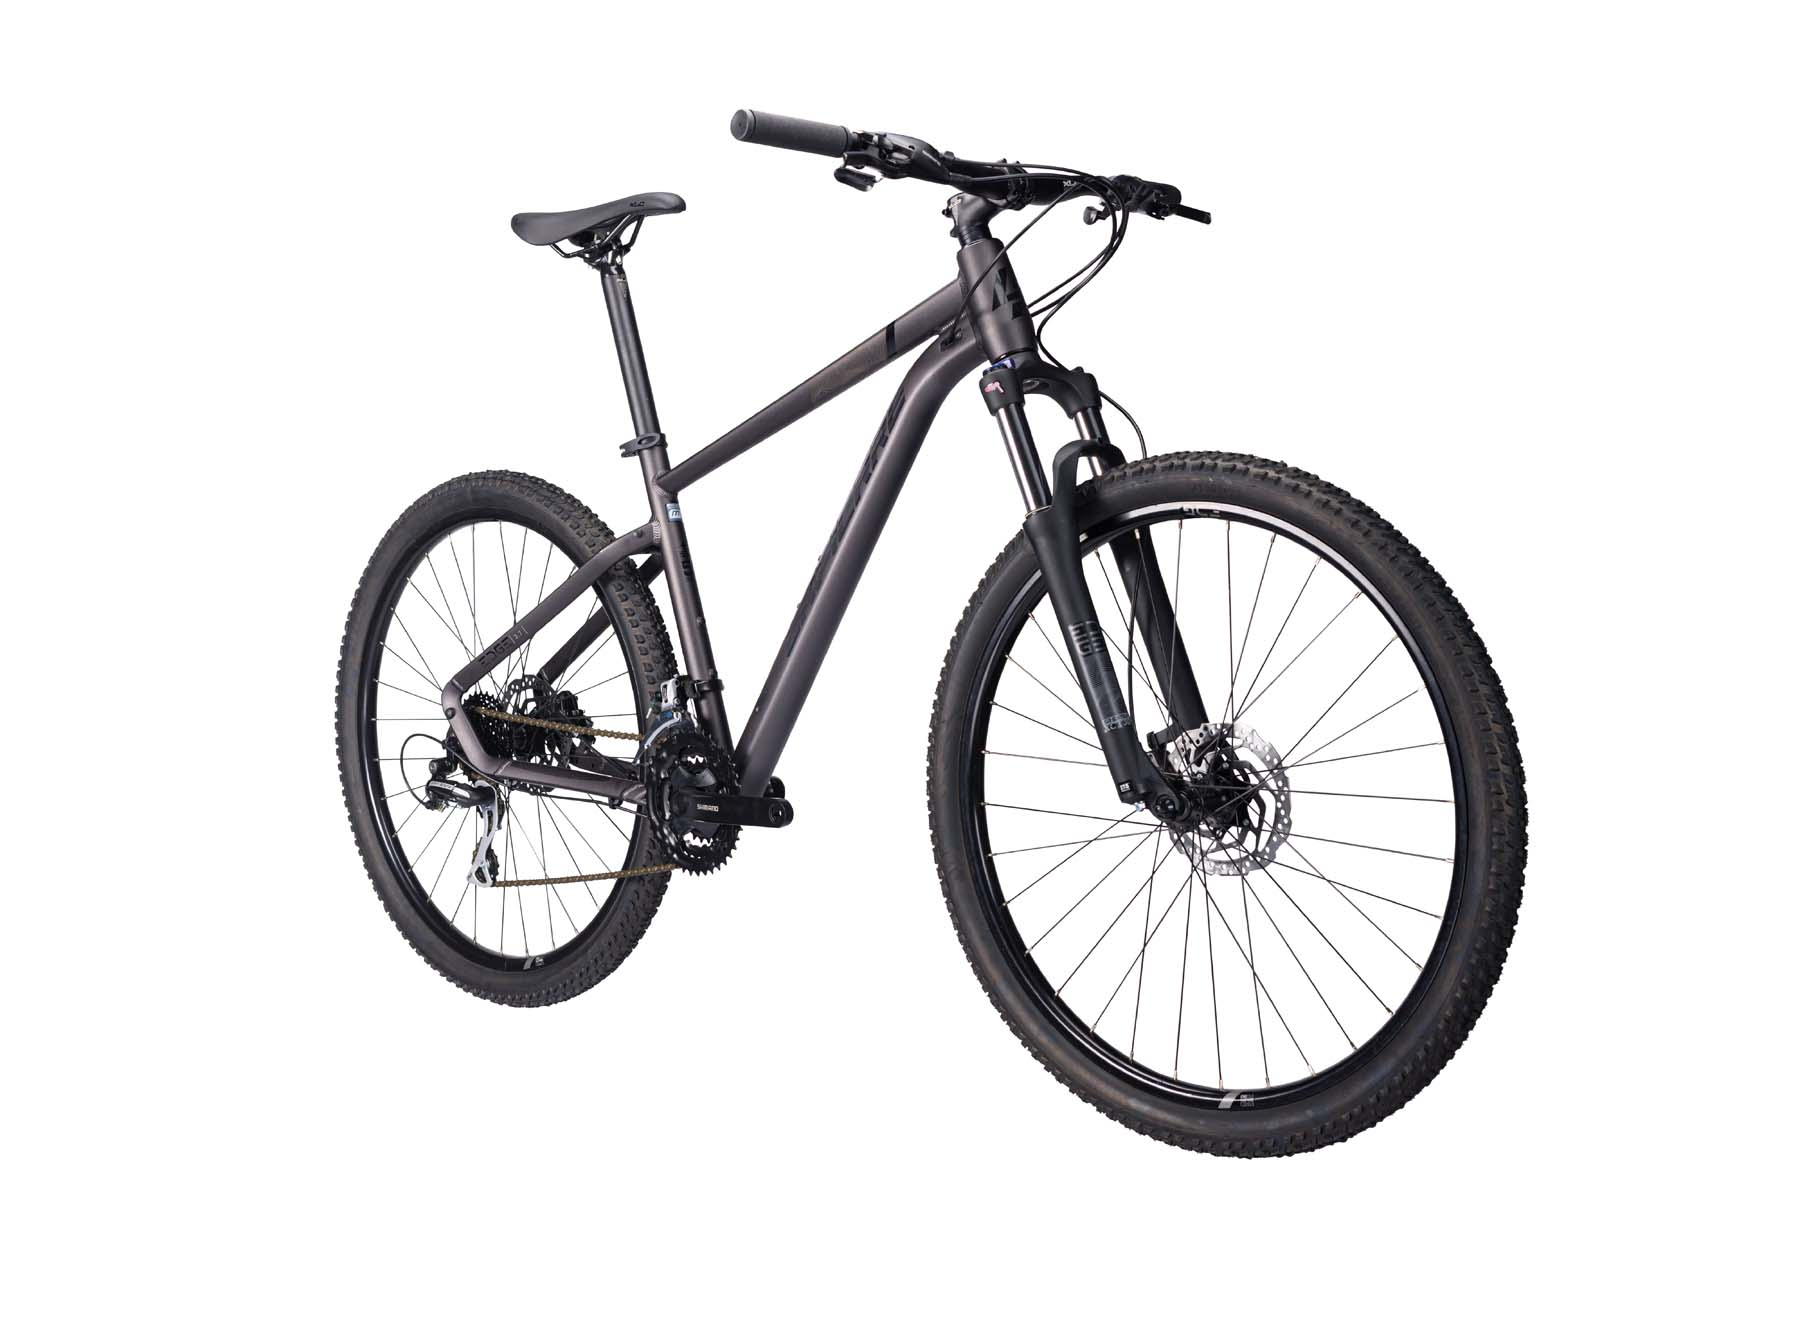 Lapierre Edge 3.9 2021 Mountain Bike 2